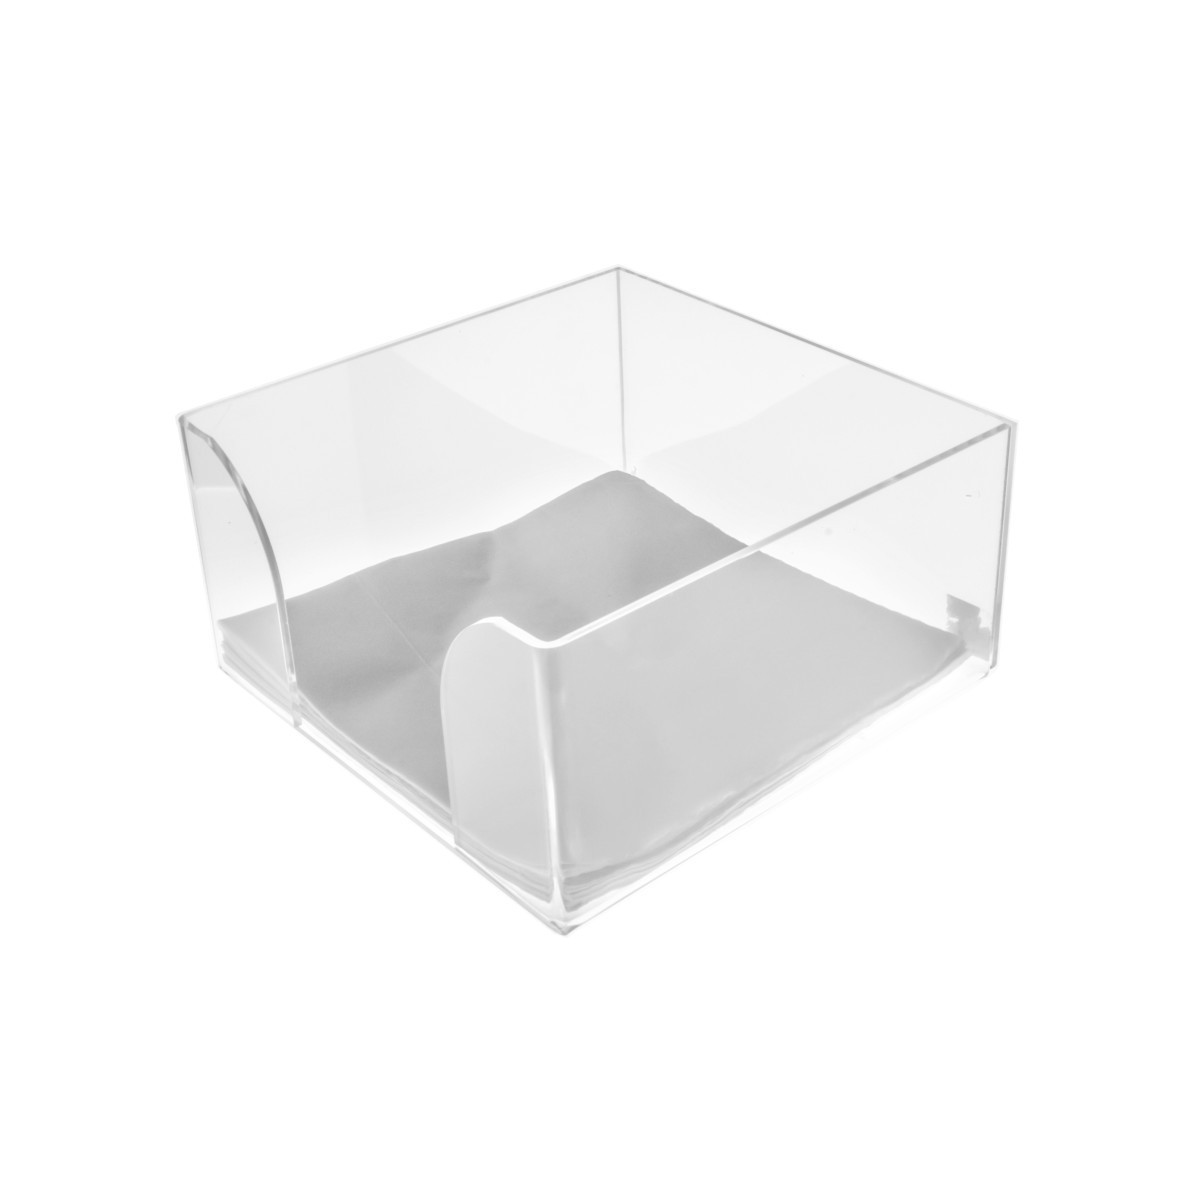 Clear Acrylic countertop napkin holder display